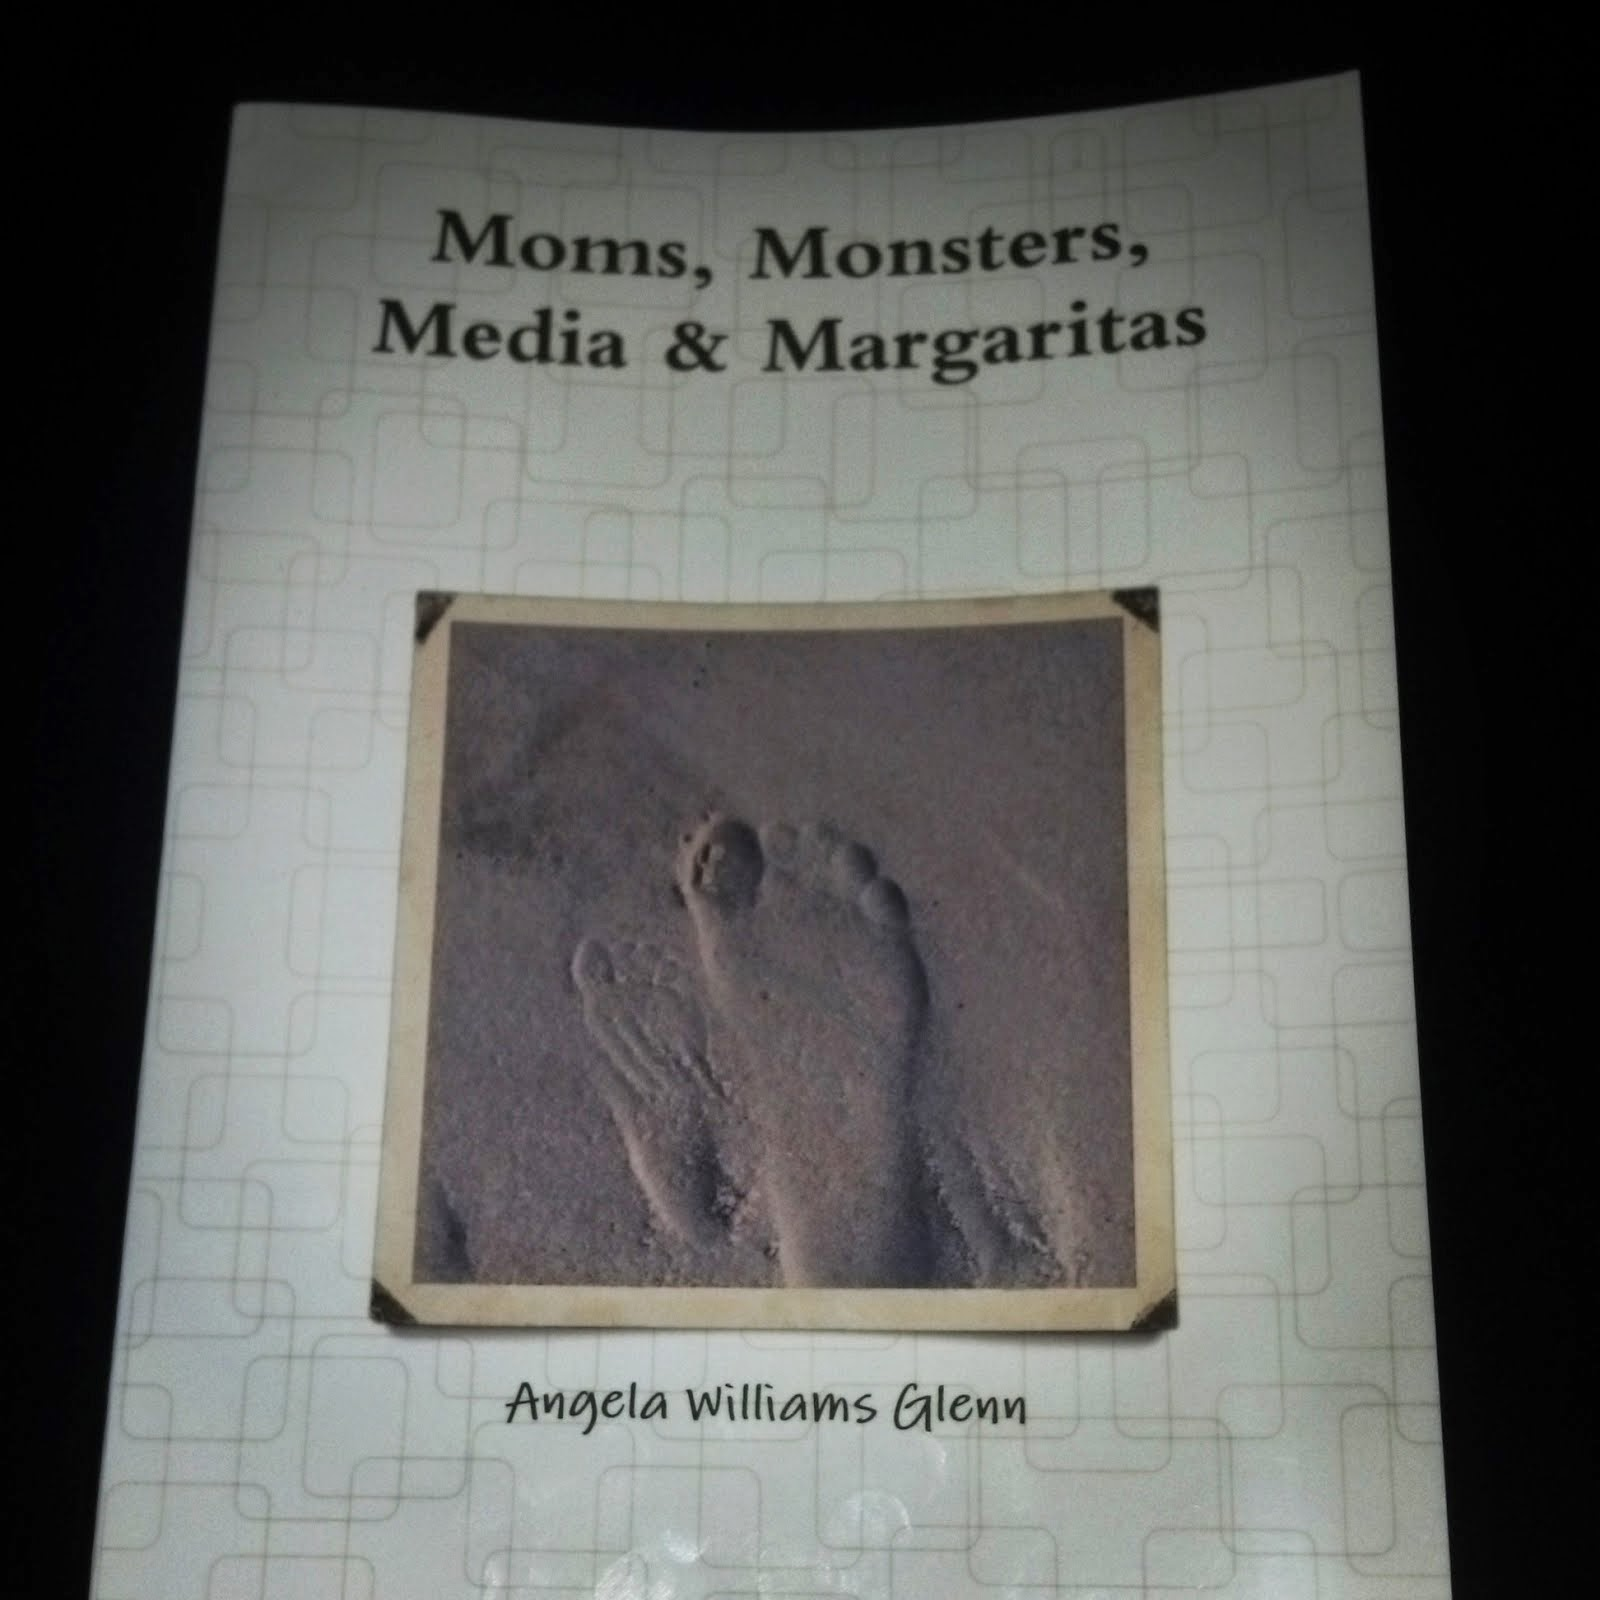 Print Copy of Moms, Monsters, Media & Margaritas for $8.00